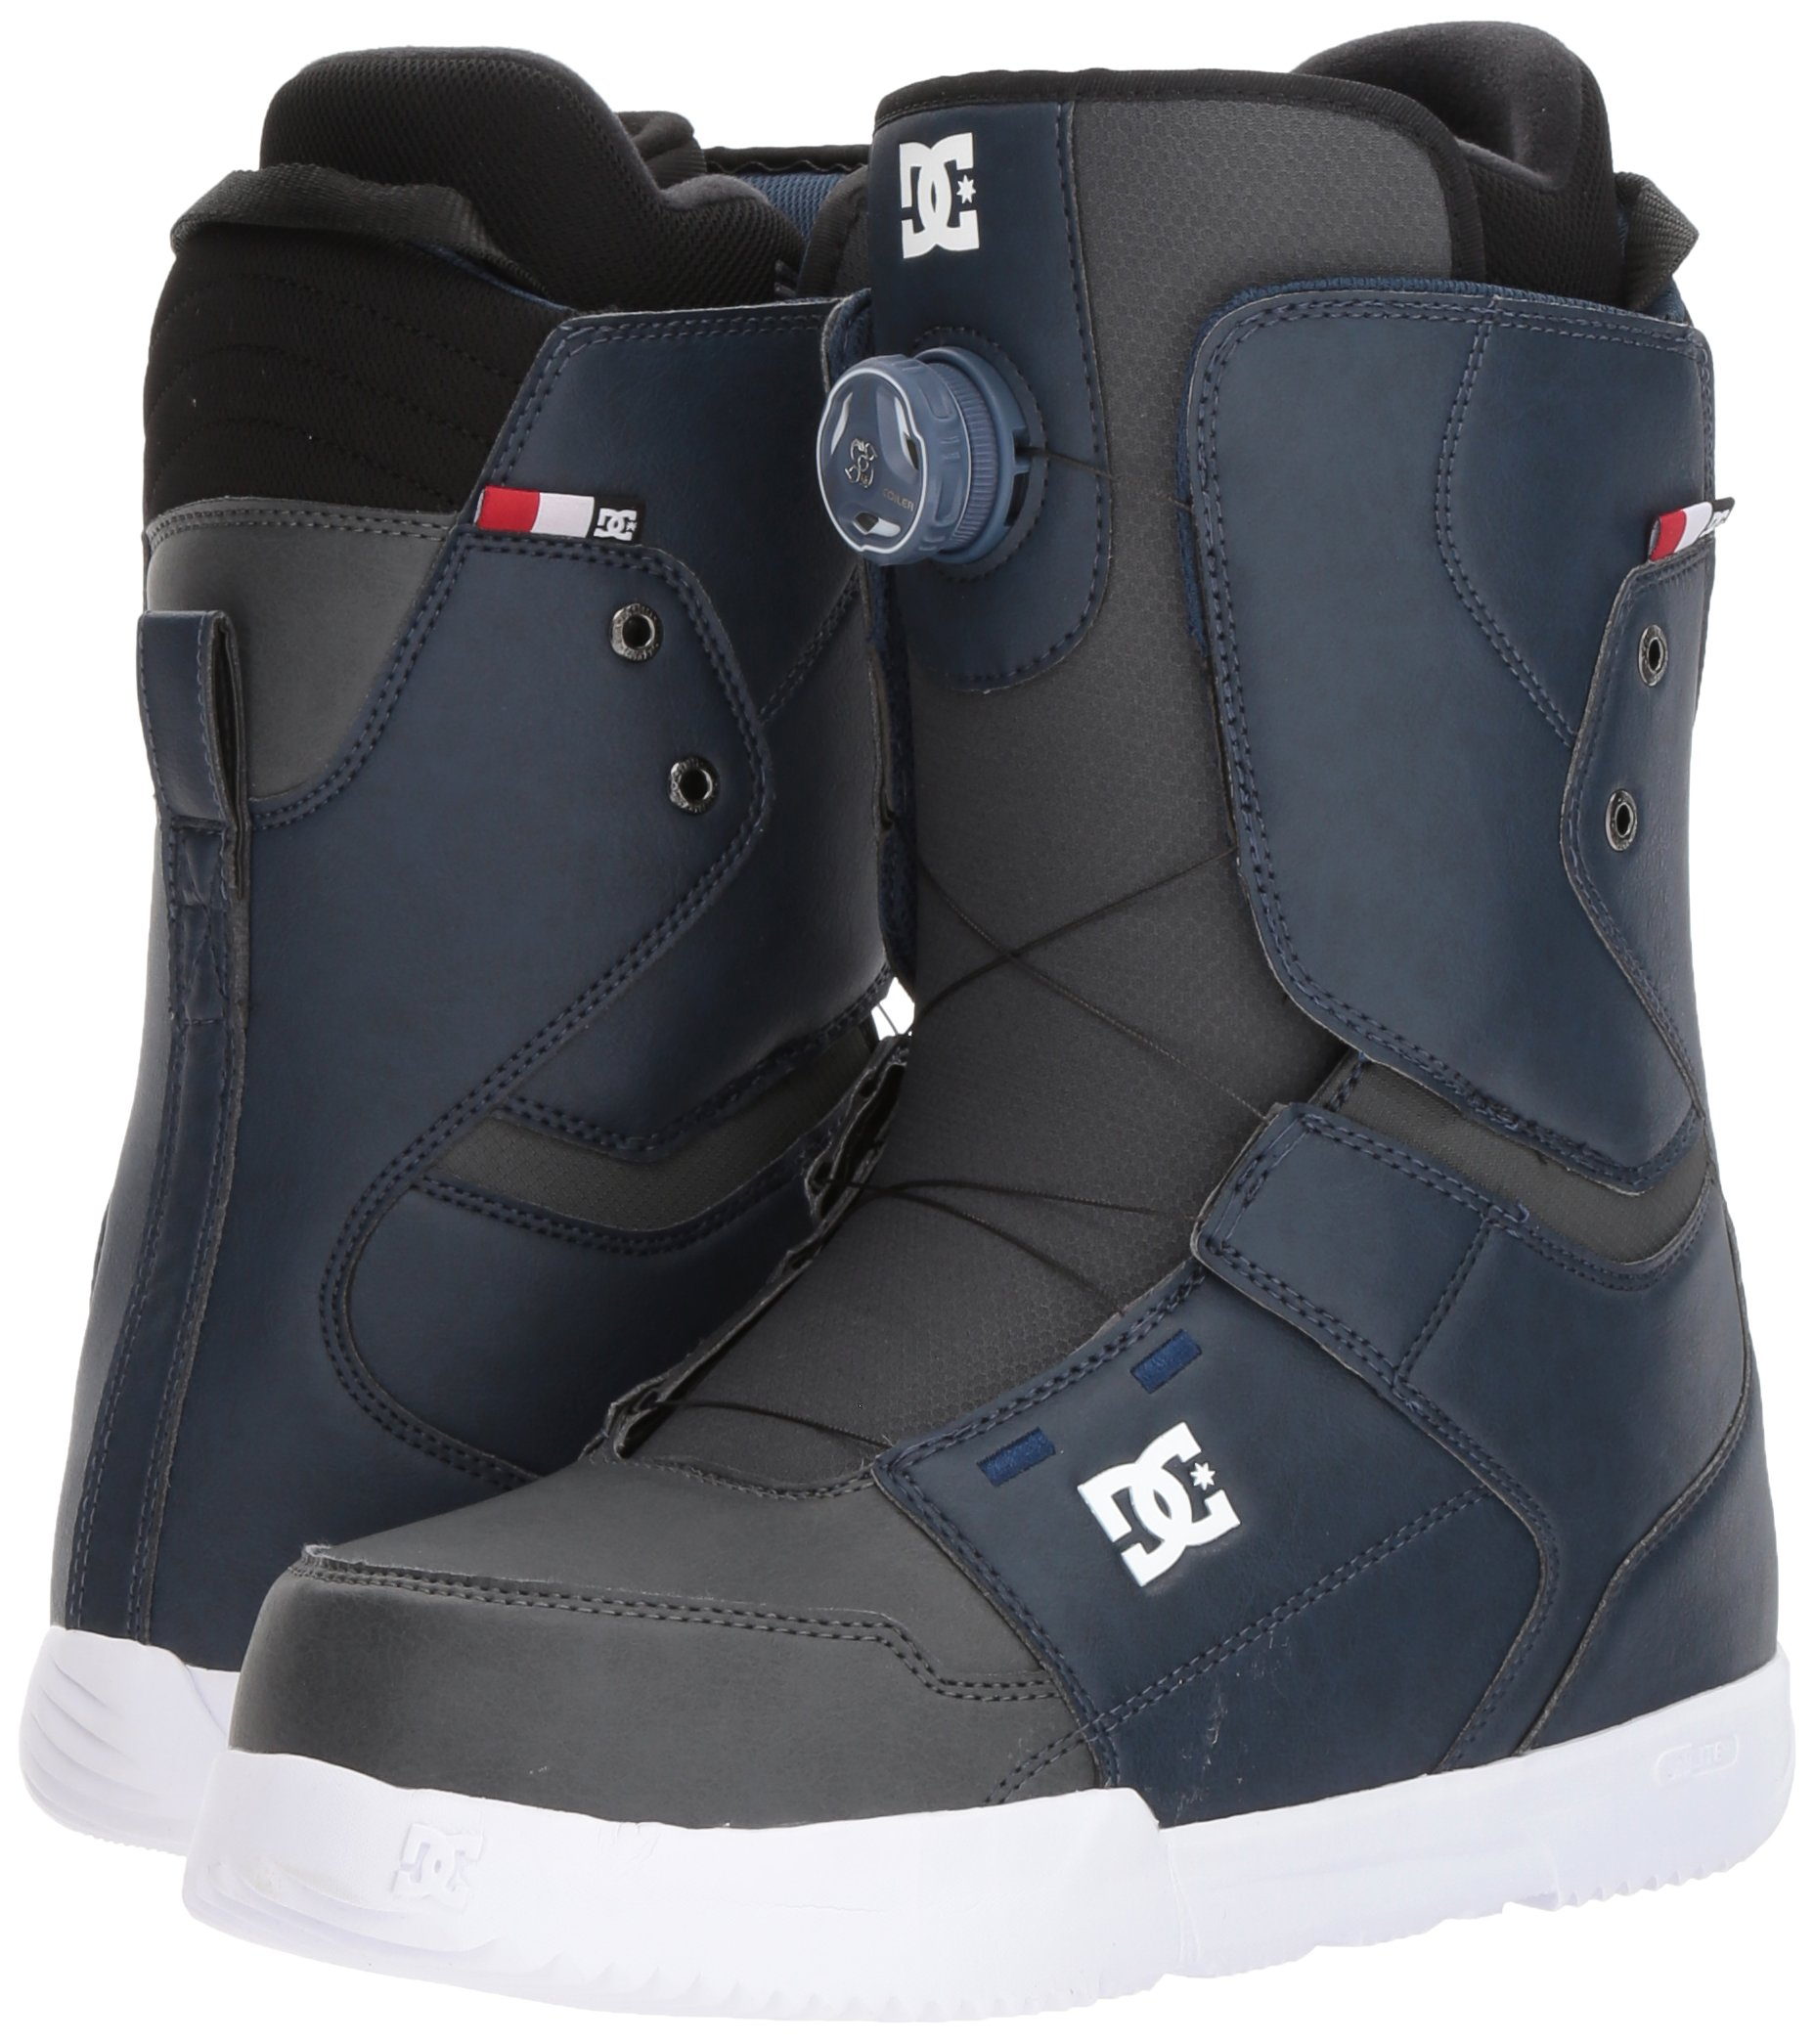 DC Men's Scout Boa Snowboard Boots, Insignia Blue, 7.5 by DC (Image #6)